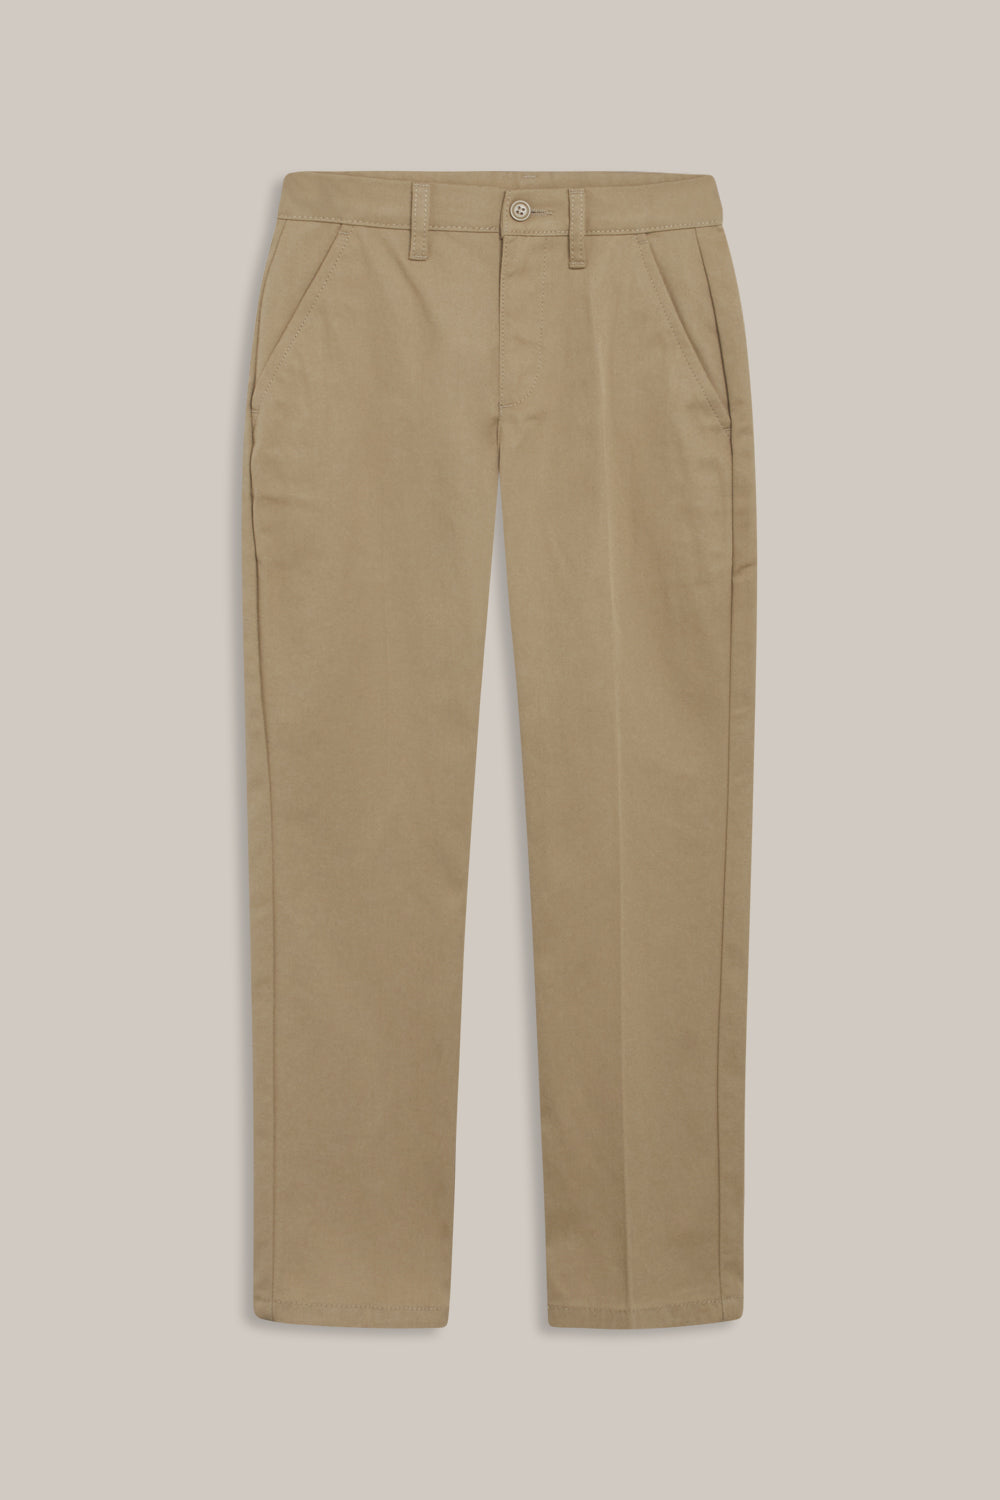 GRUNT Phillip Original pant Pants Sand